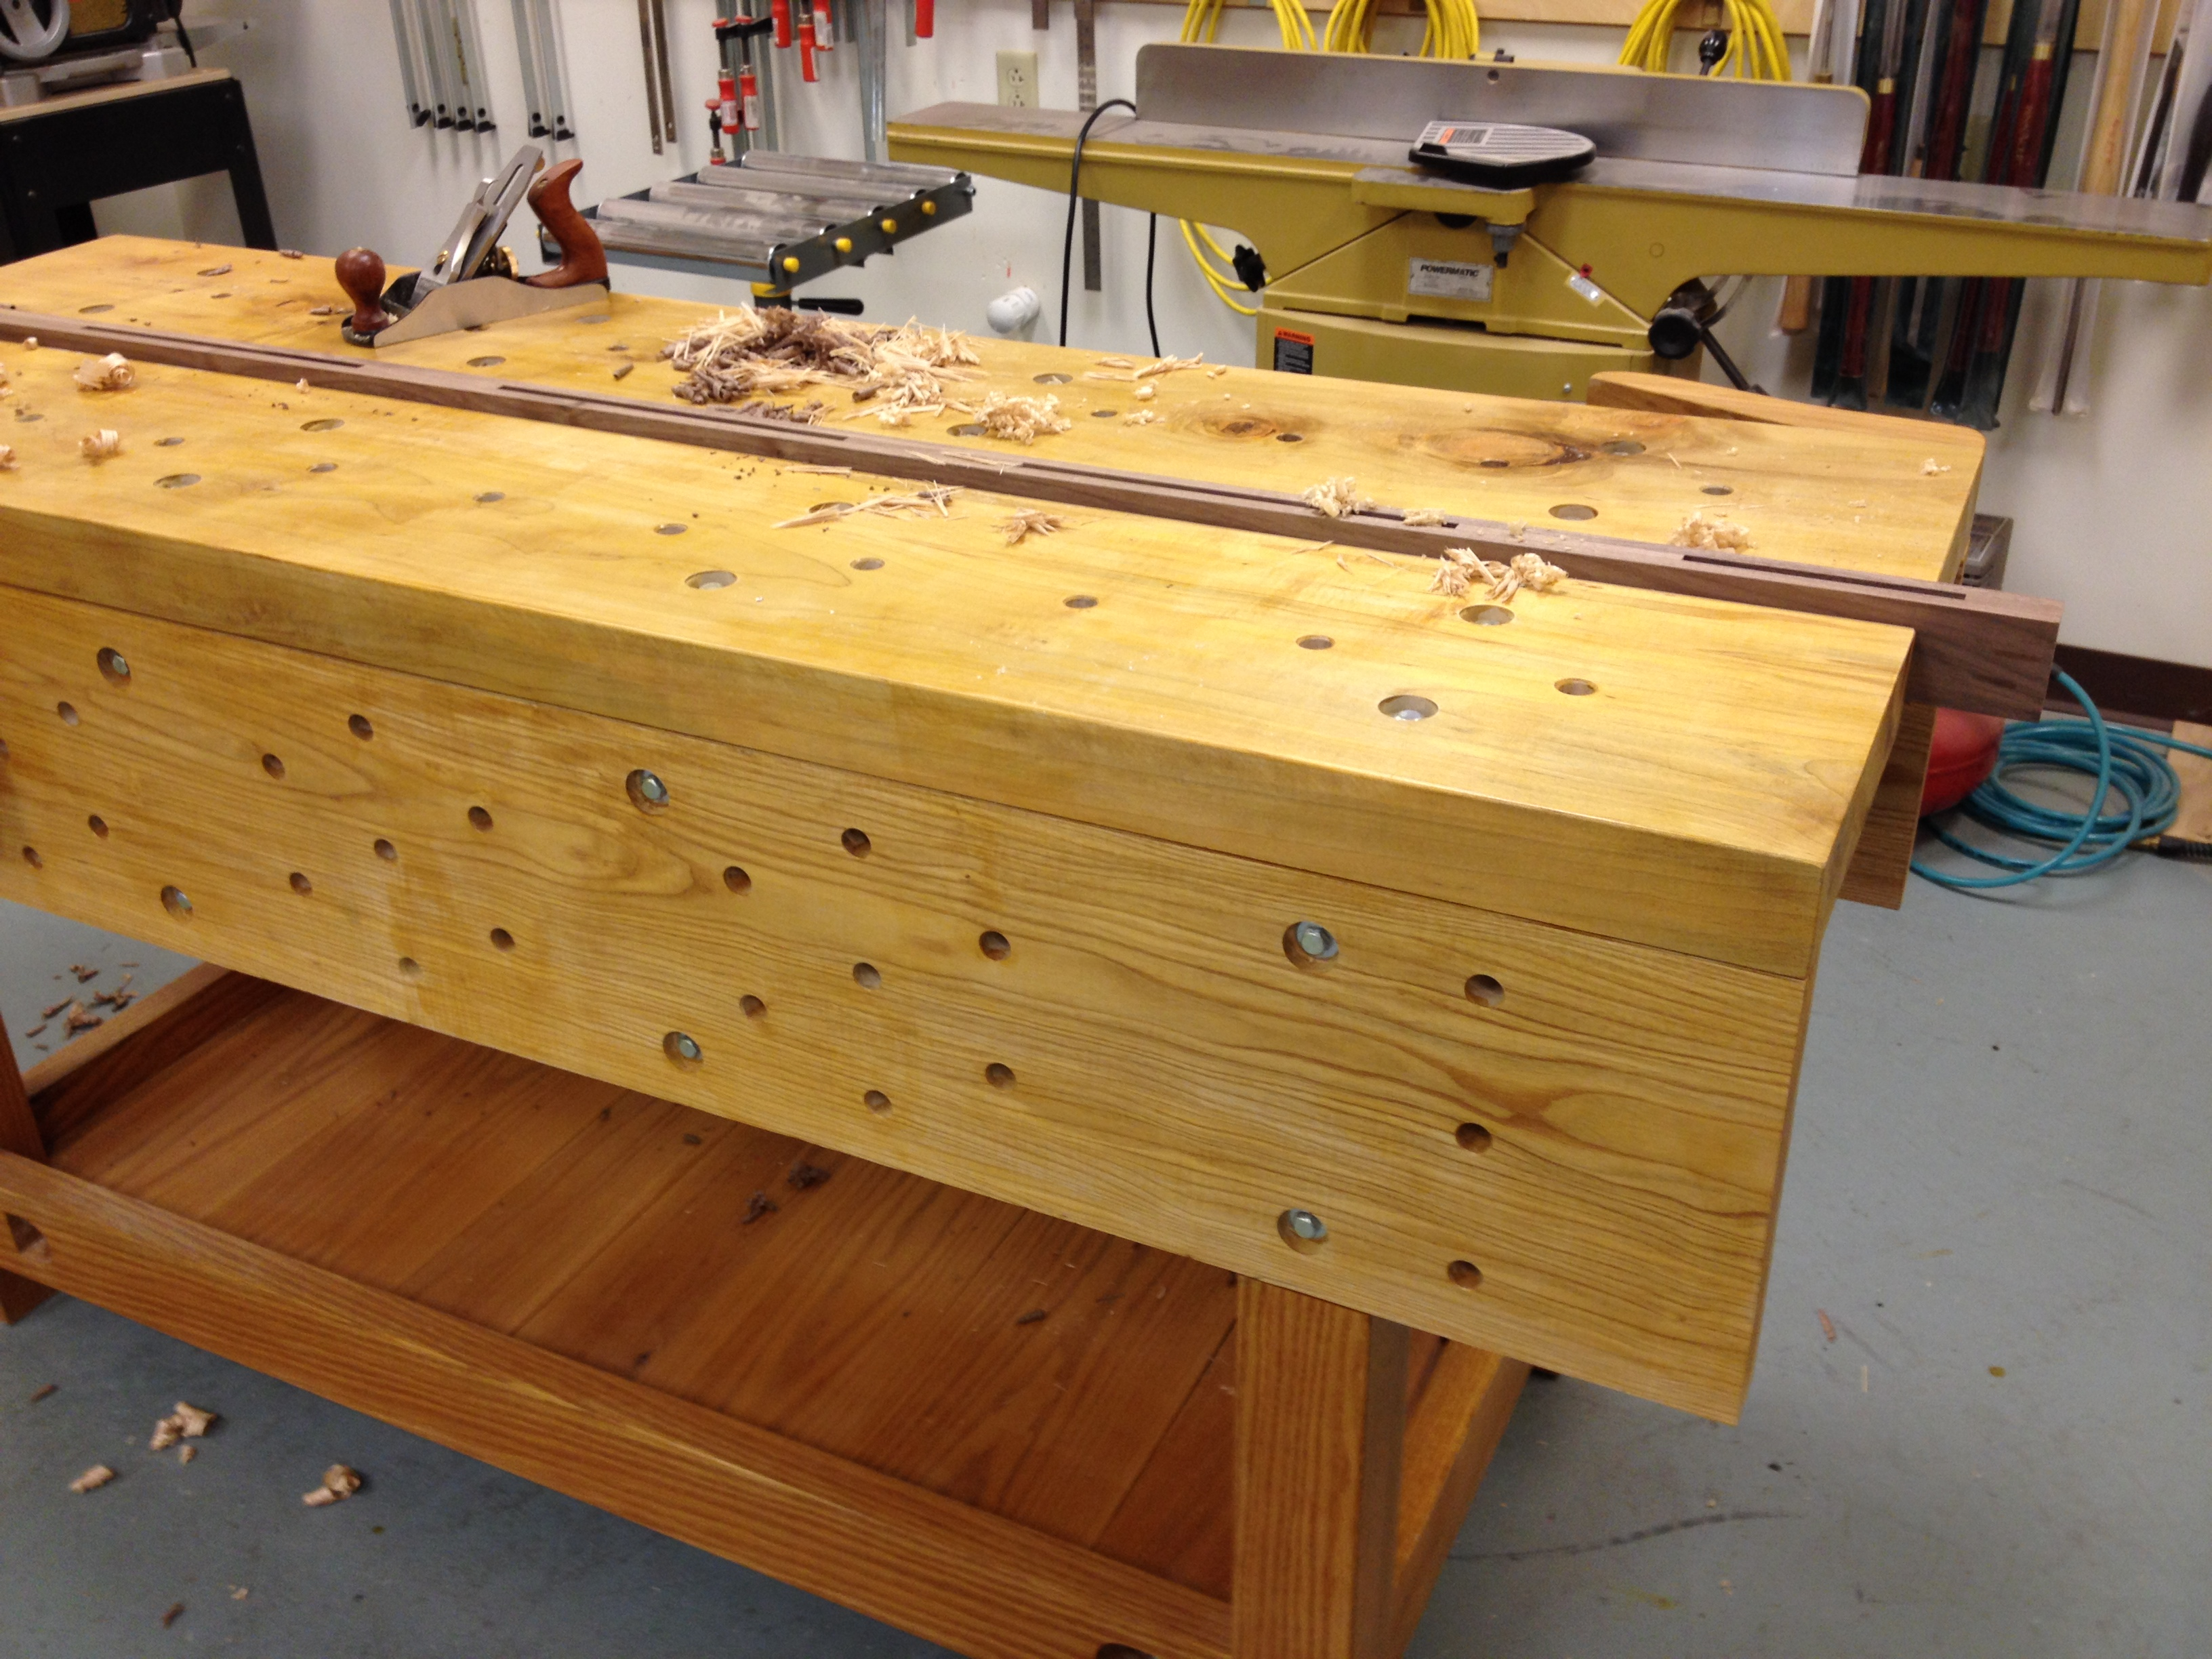 Nicholson Bench Project – A gallery | A Woodworker's Musings